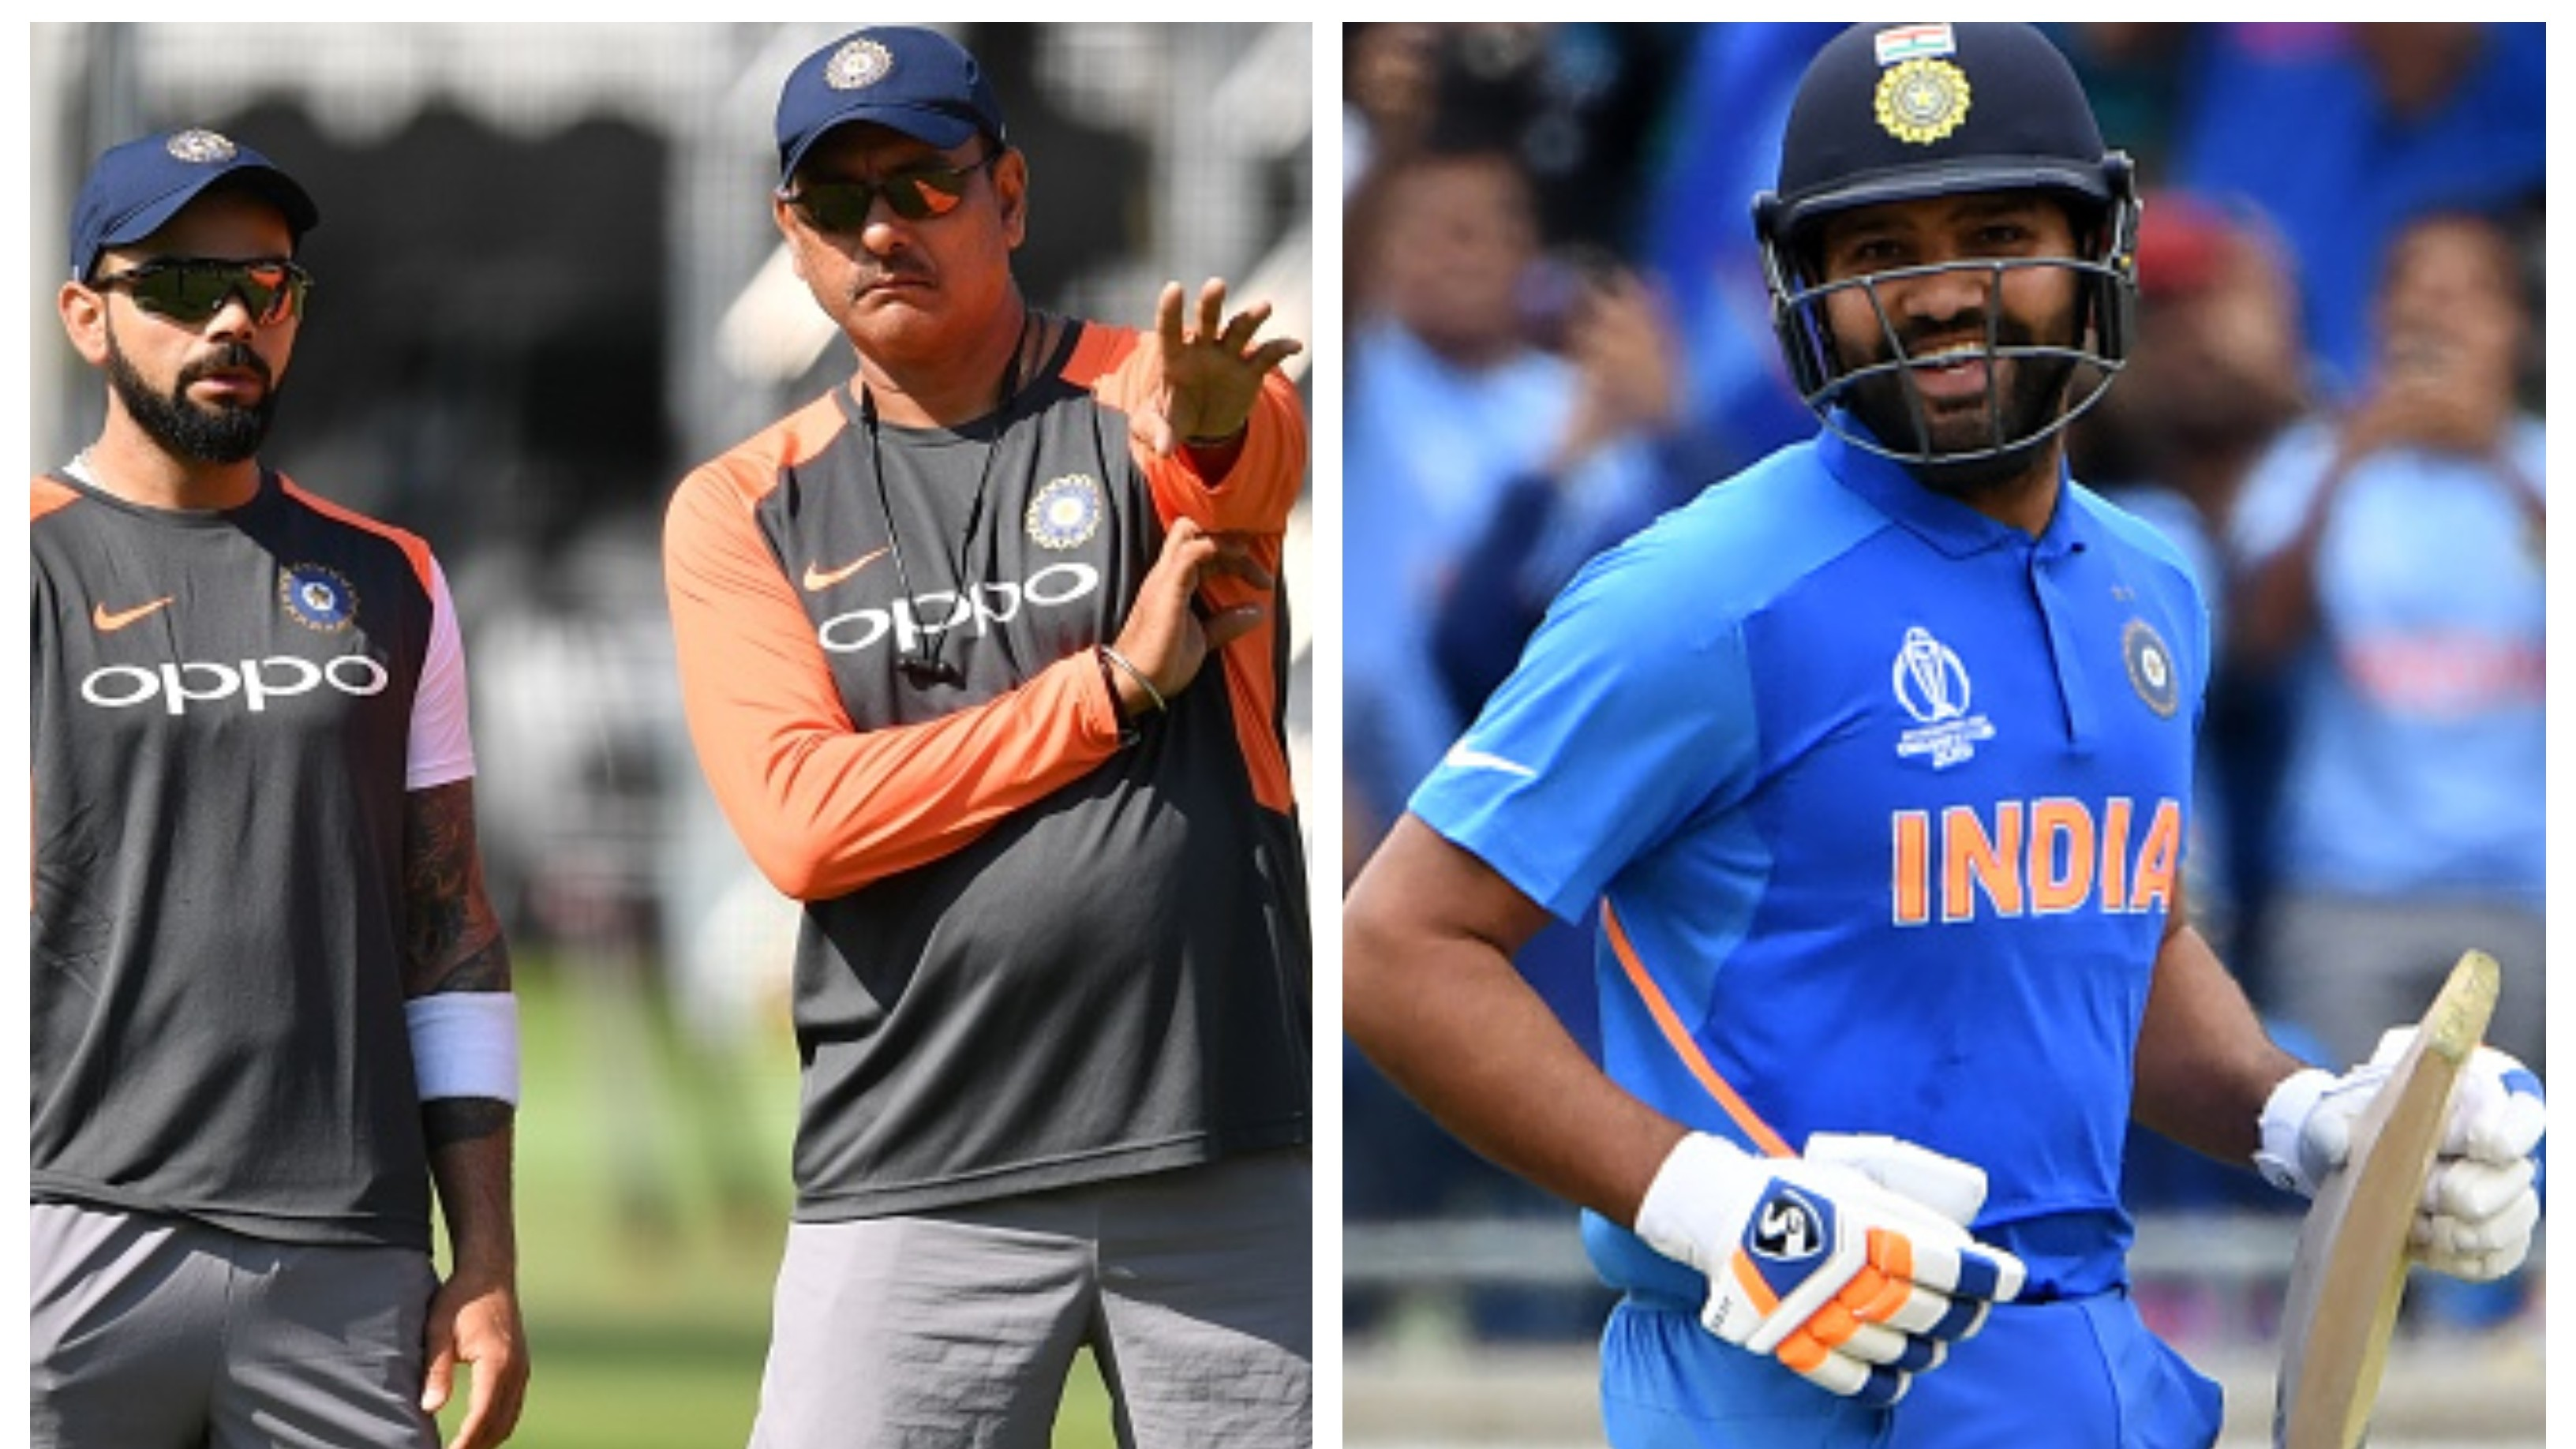 IND v SA 2019: Team management asks Rohit Sharma to be more vocal on the field in Dhoni's absence